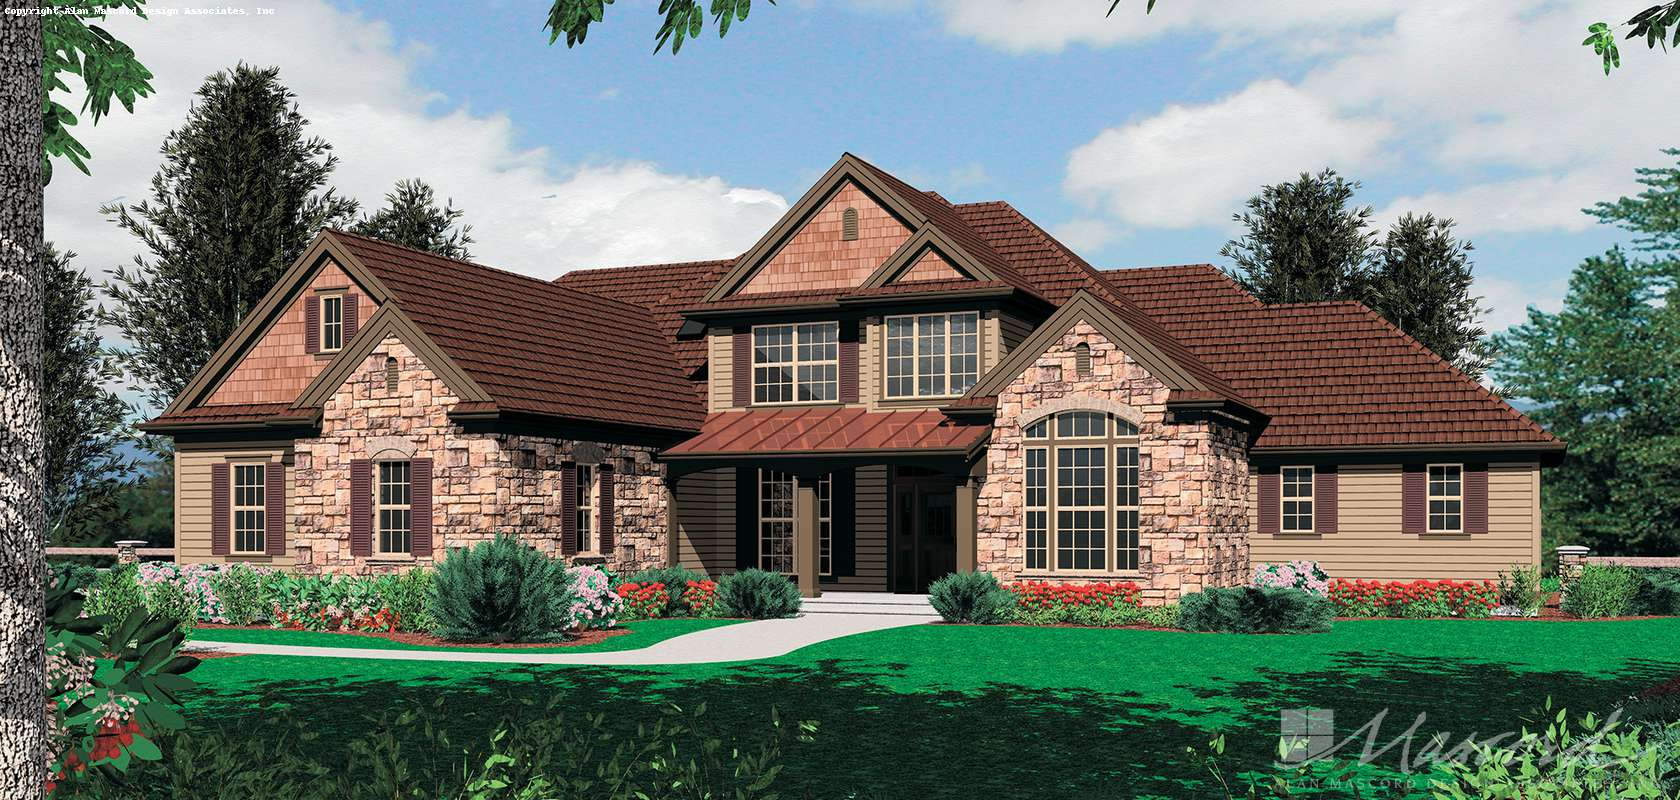 Mascord House Plan 2372: The Bedford